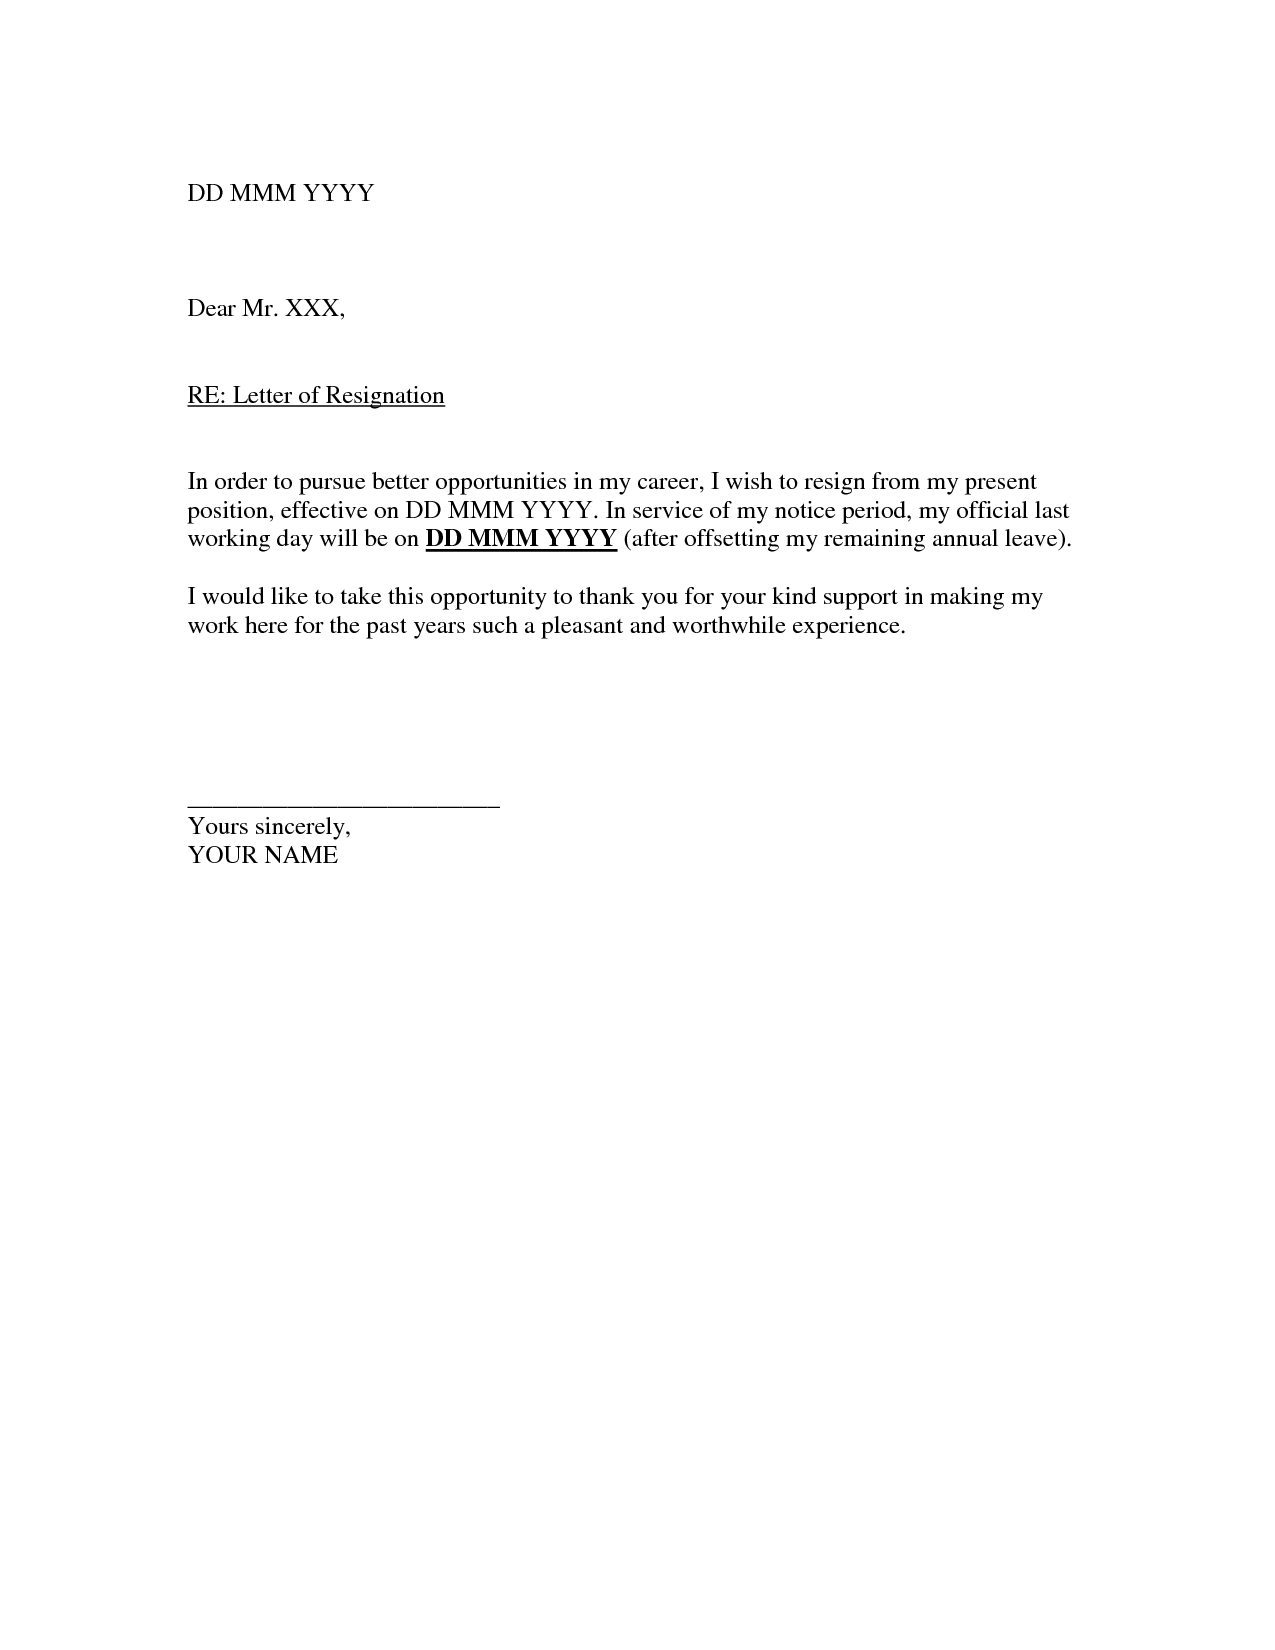 letter of resignation format samples canre klonec co